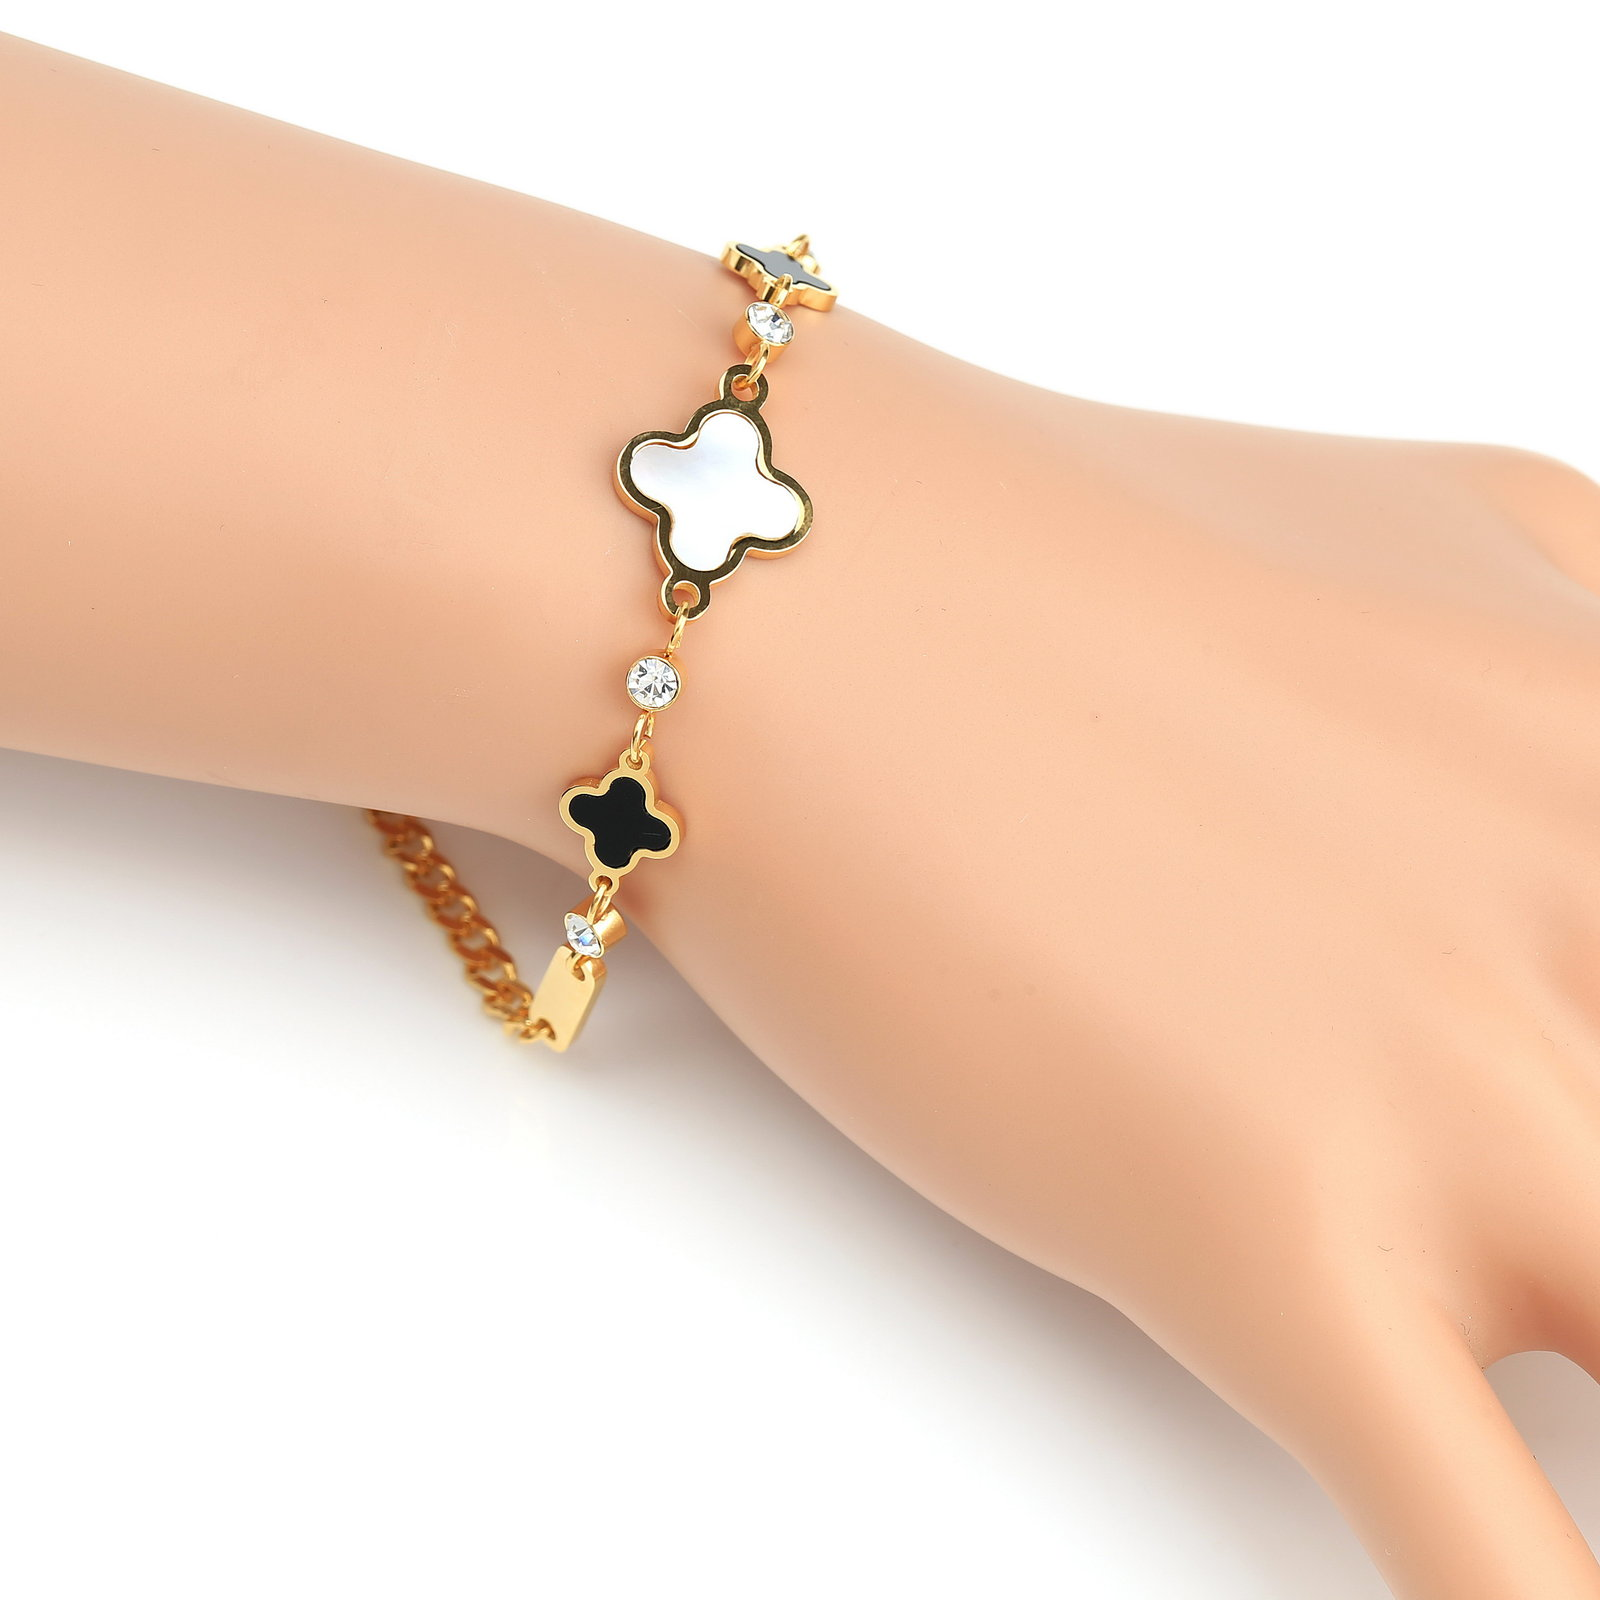 Primary image for UE-Designer Clover Bracelet-Swarovski Style Crystals, Faux Onyx, Mother of Pearl